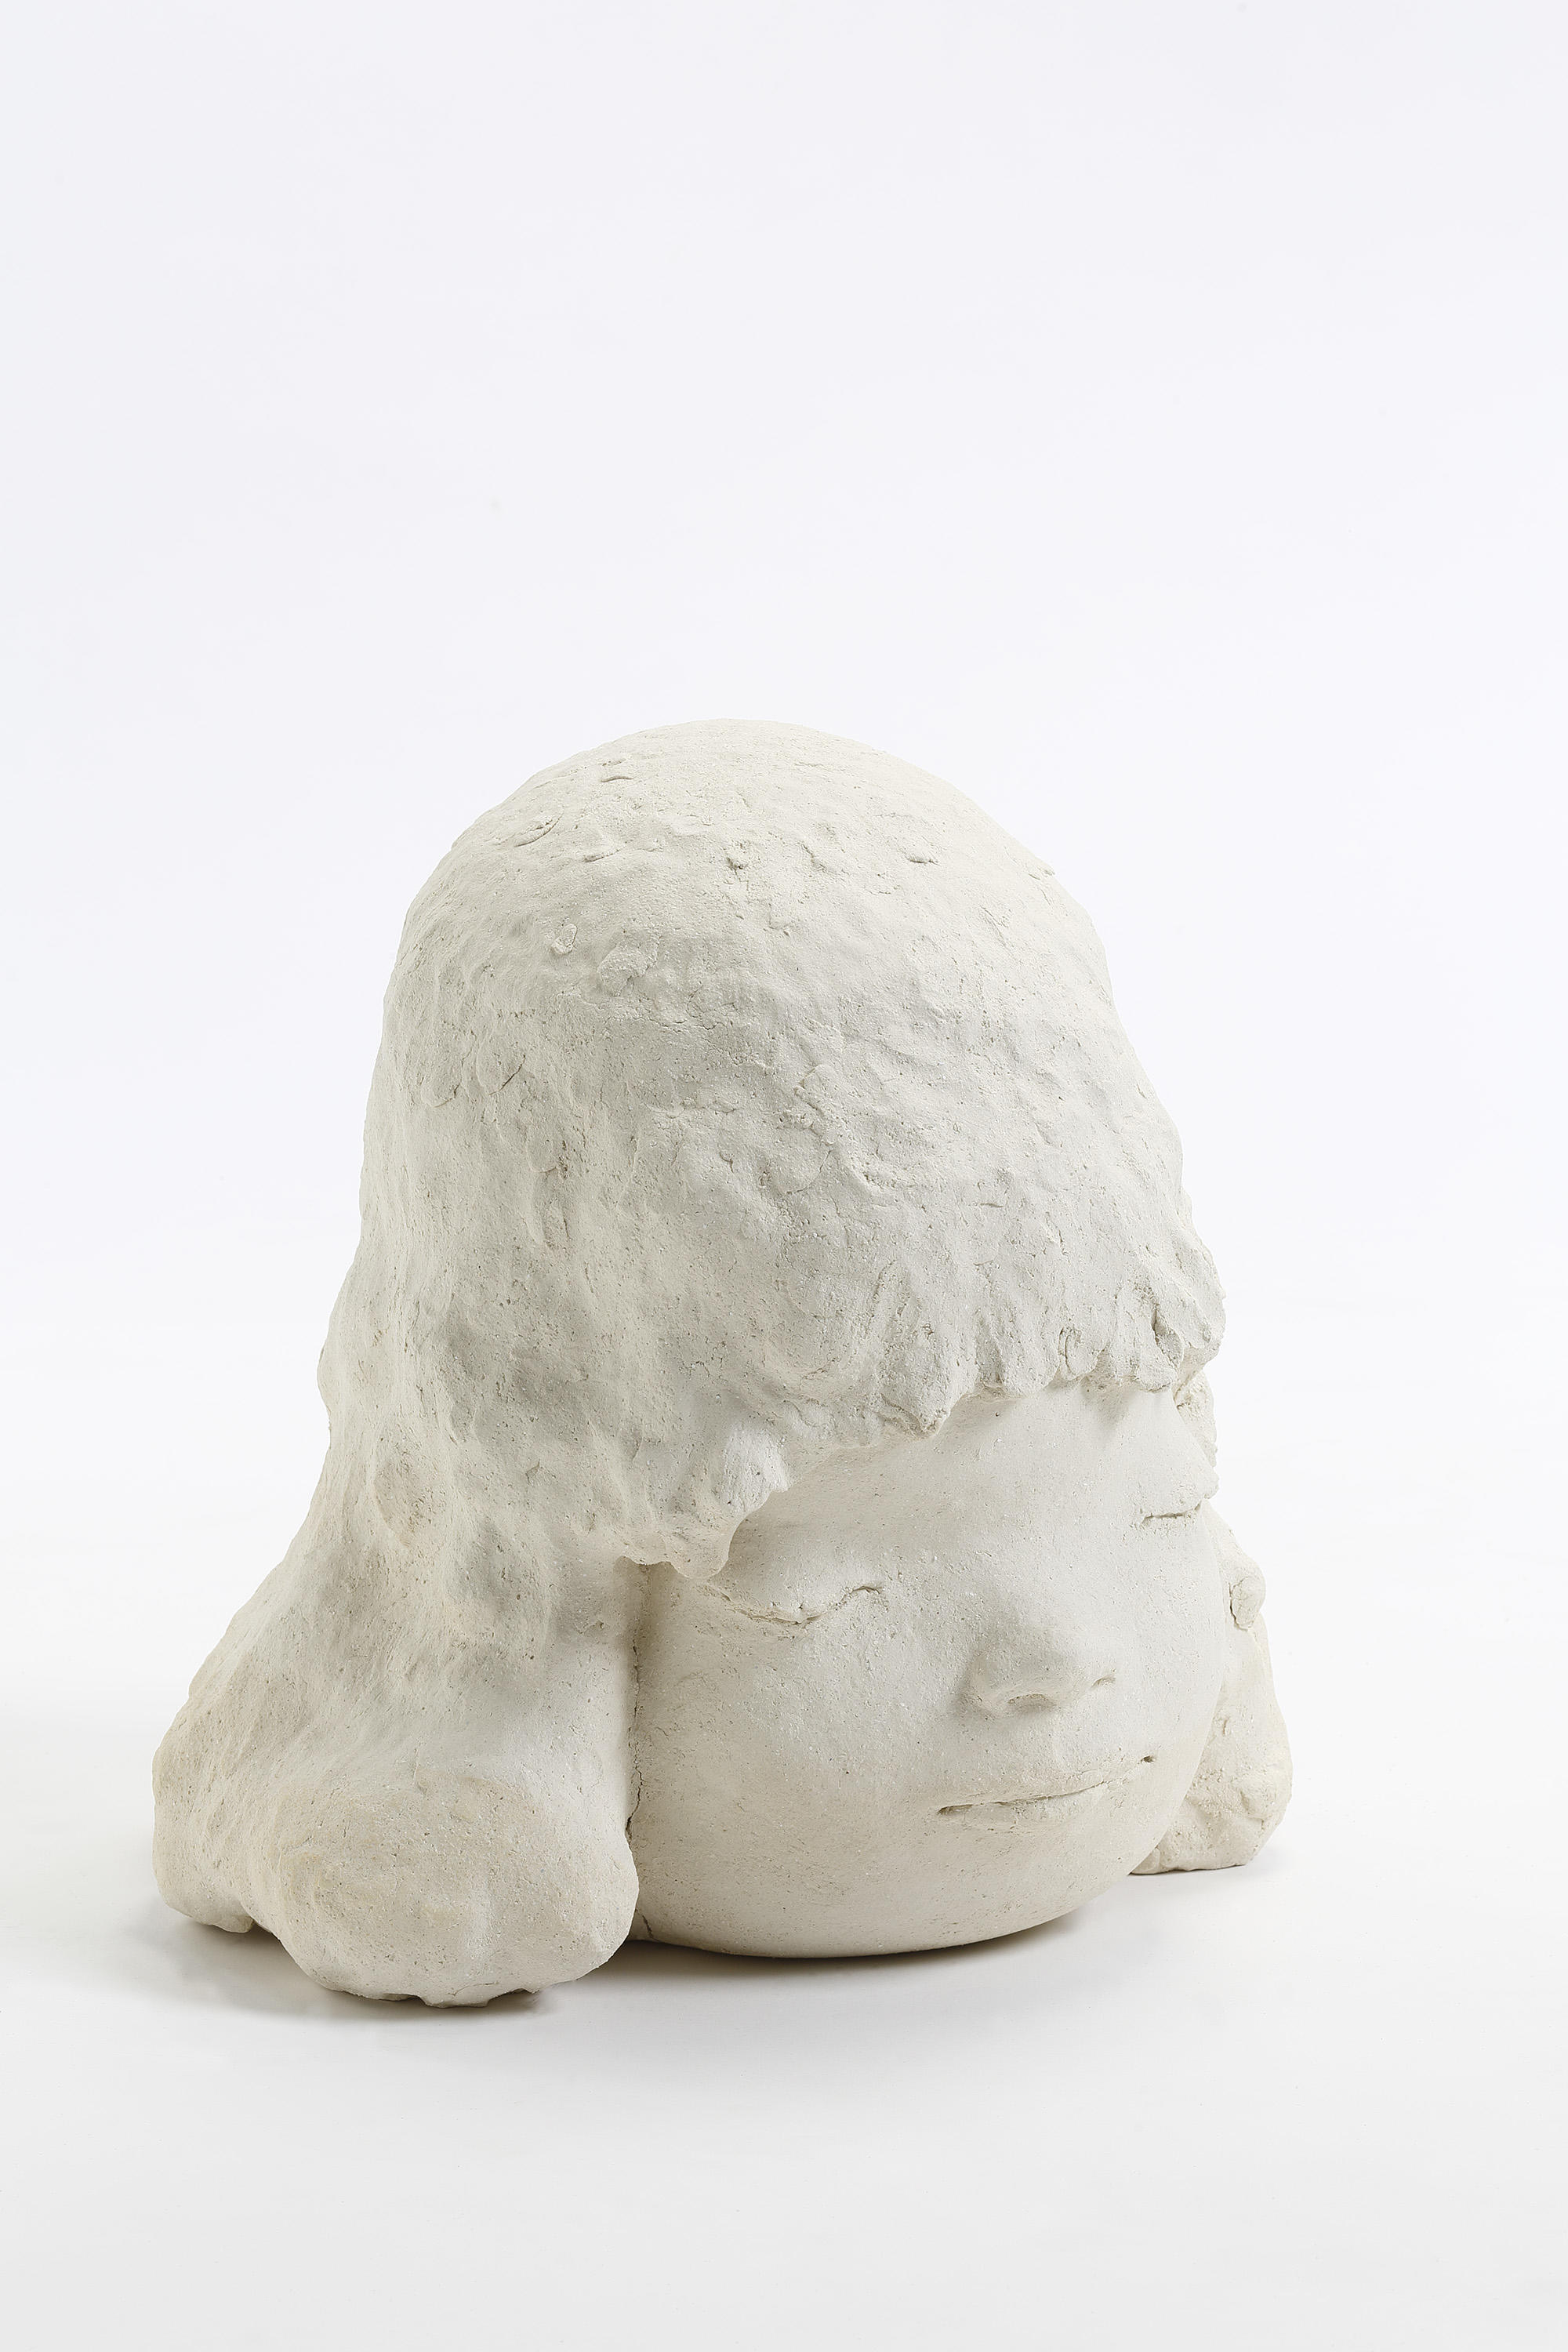 "Yoshitomo Nara, Sleepy Head, 2018,  ceramic,  16-1/8"" x 16-15/16"" x 15-15/16"" (41 cm x 43 cm x 40.5 cm),  SCULPTURE,  No. 68826, view 3,  Alt # C-2018-029, Format of original photography: hi-res TIFF"